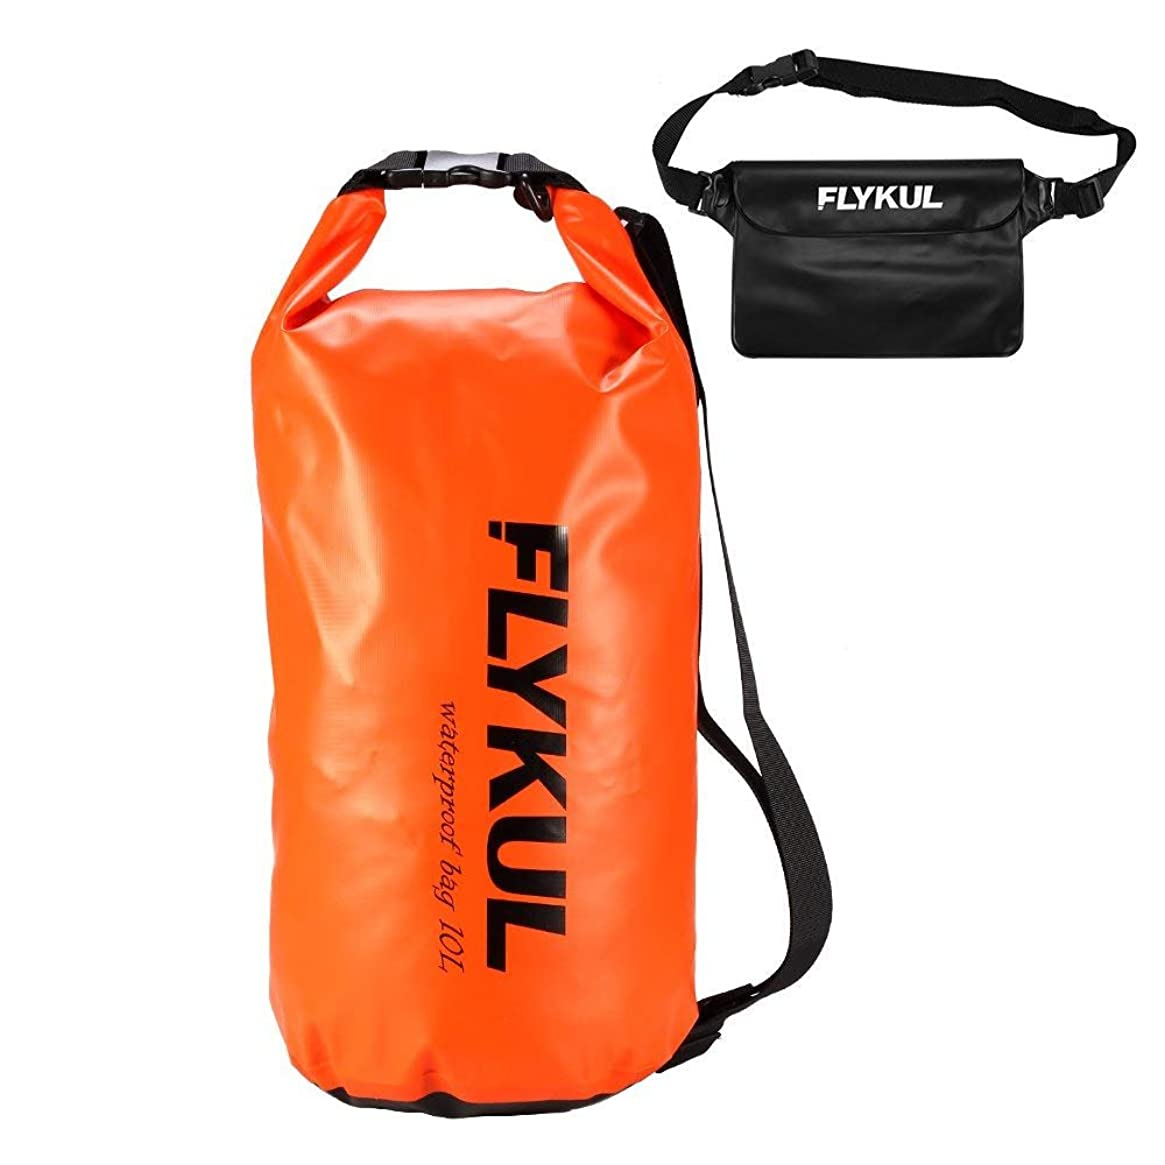 Attuosun Waterproof Dry Bags Sets of 2,10L Orange Waterproof Pouch&Black Waterproof Waist Pouch,Super Waterproof Protection Dry Bags 1 Adjustable Shoulder Strap,Perfect for Boating,Swimming,Kayaking